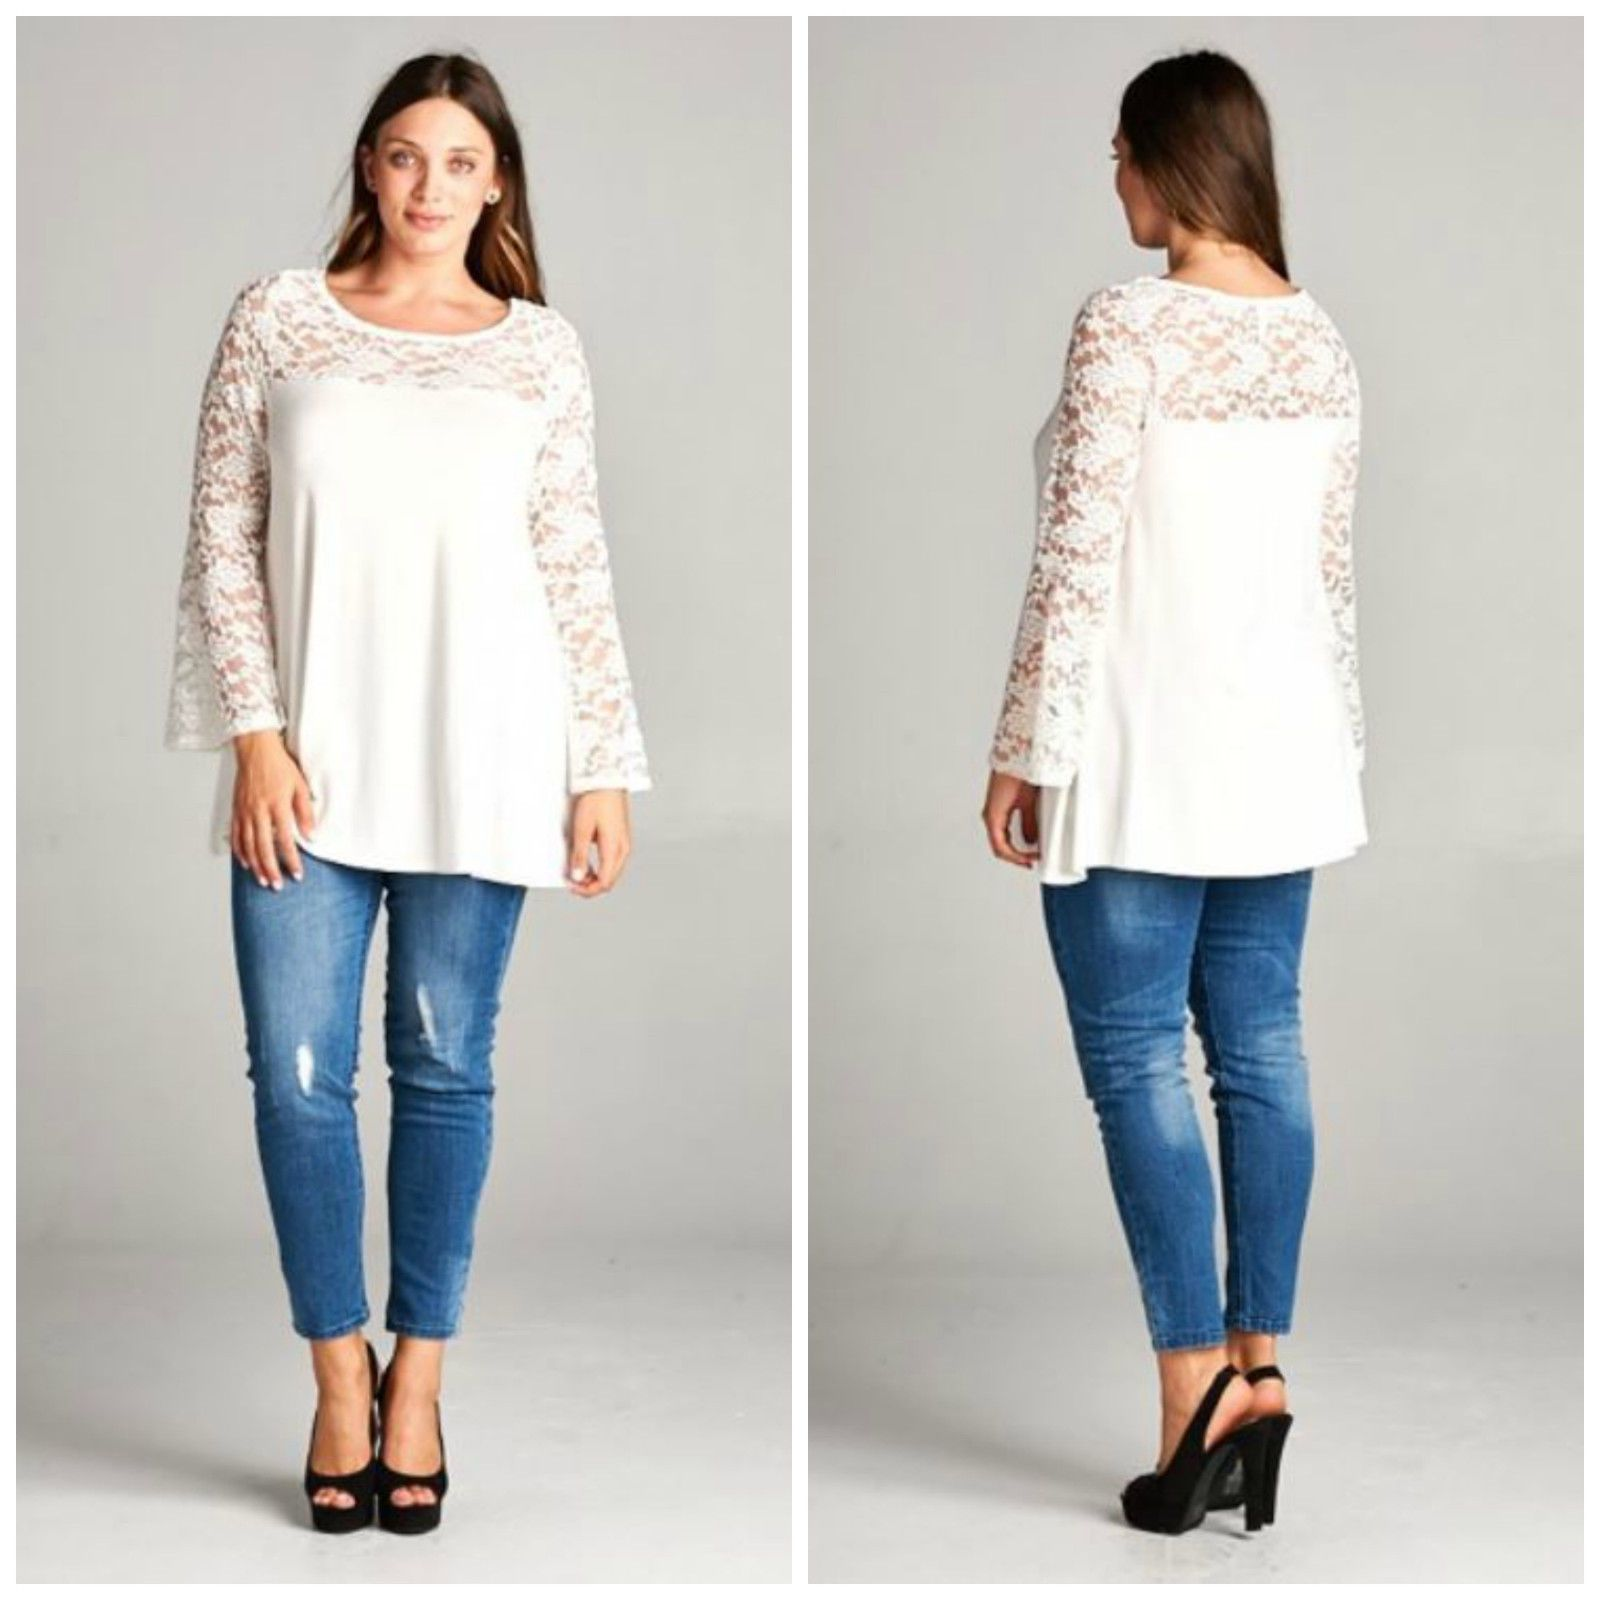 New white long sleeve lace womens top blouse boho western plus size